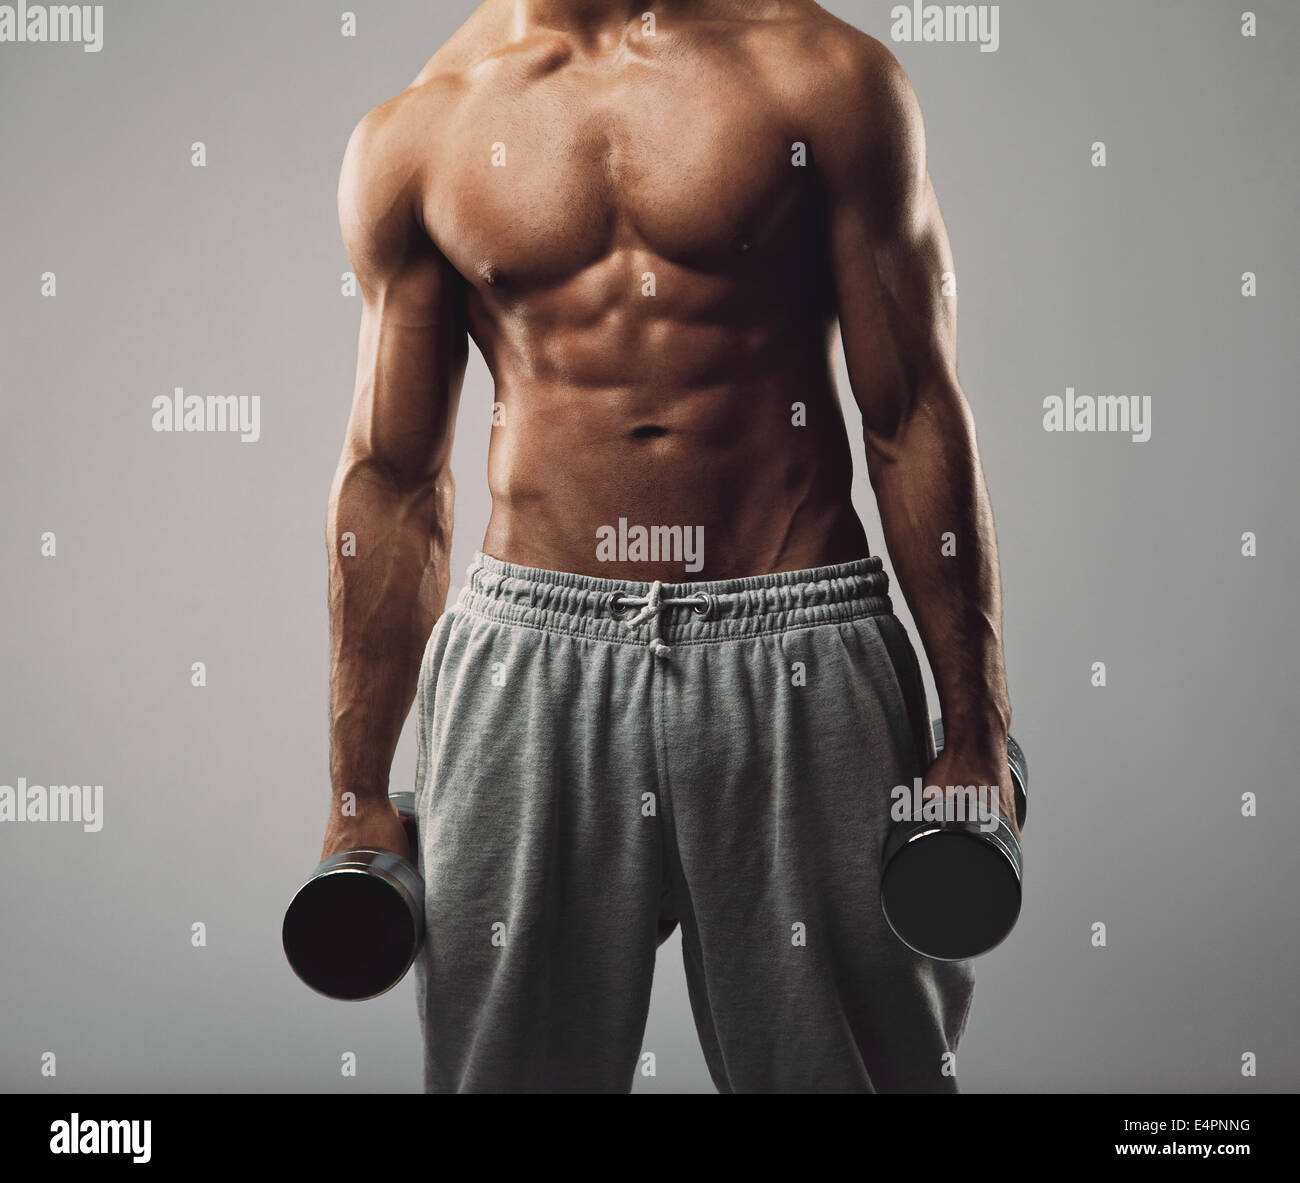 Cropped image of fitness male model holding dumbbells in both hands on grey background. Muscular young man working - Stock Image